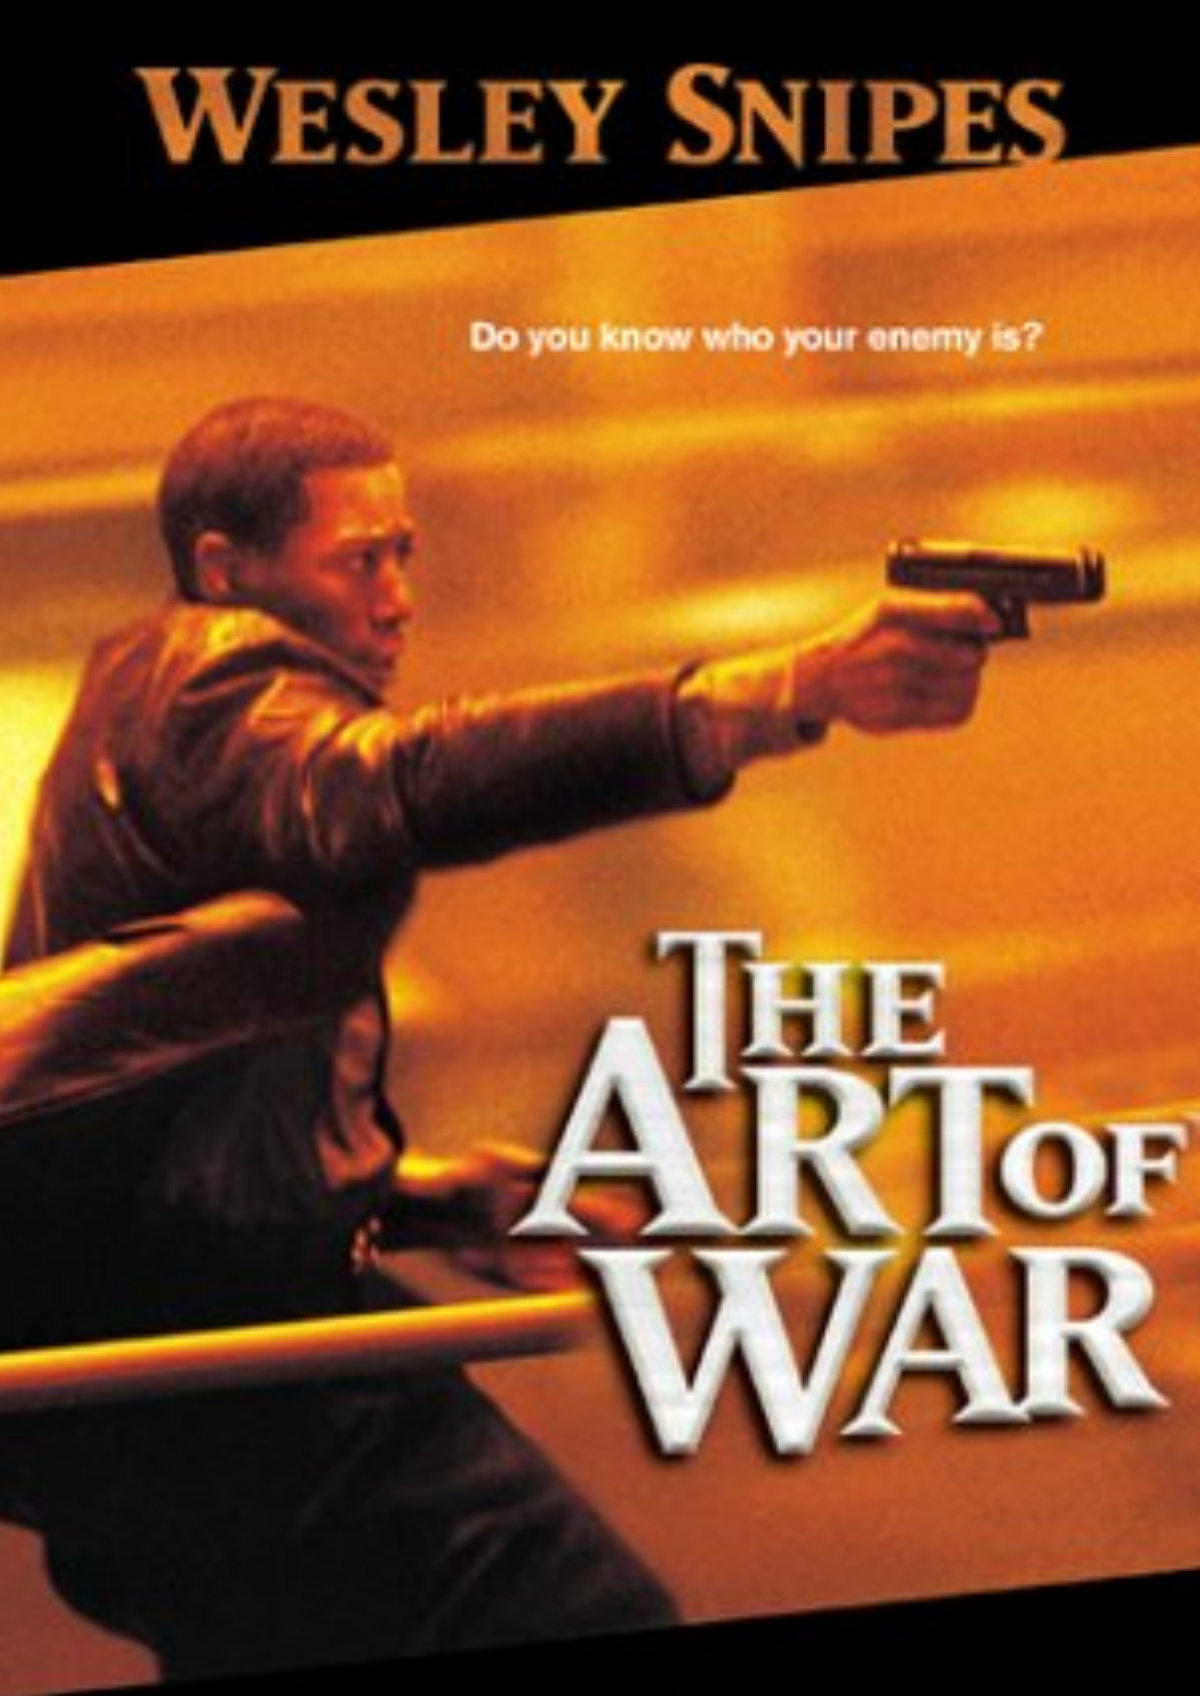 'The Art Of War' movie poster